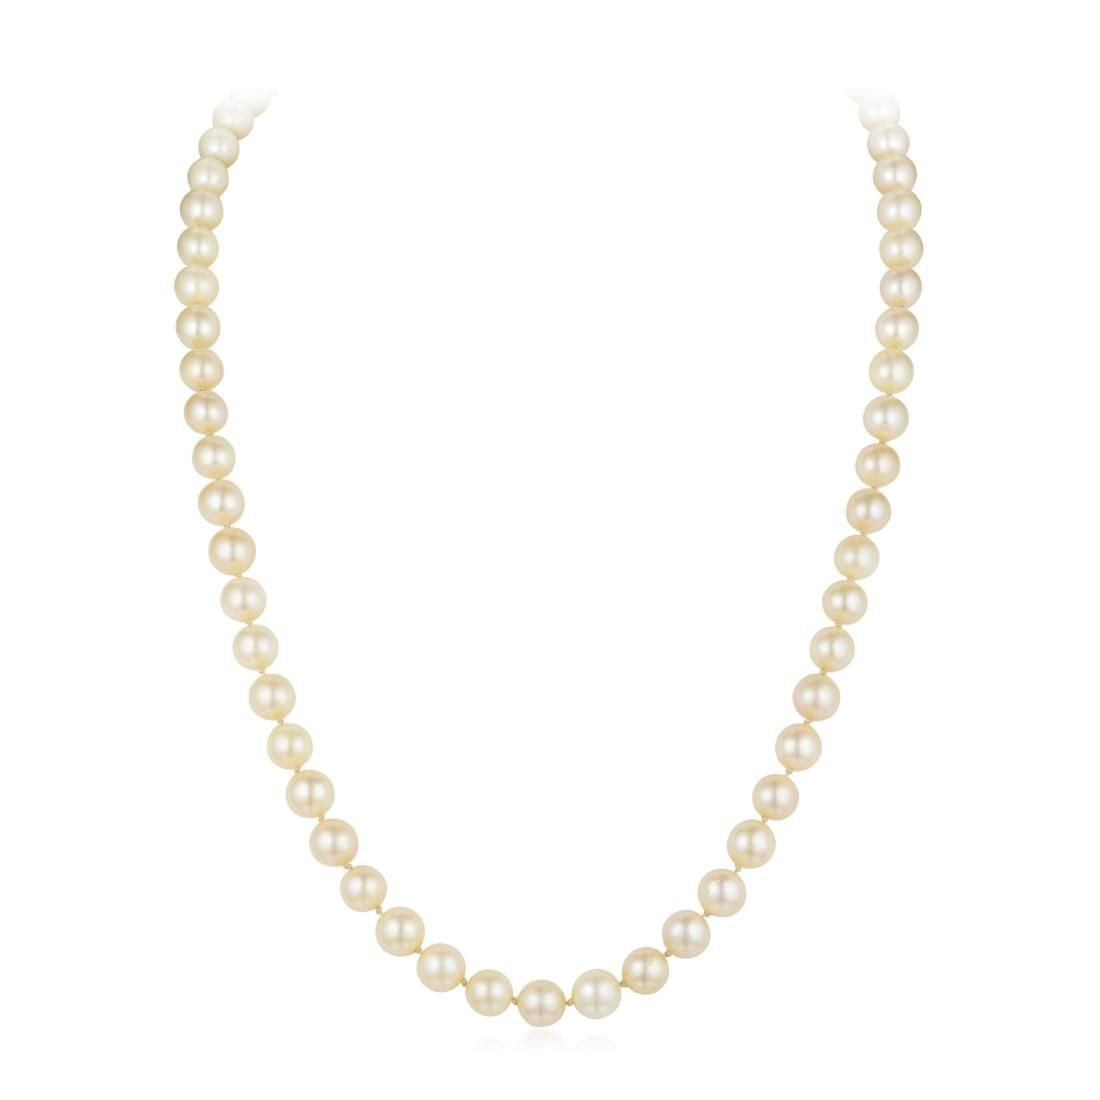 A Cultured Pearl Necklace with a 14K Gold Sapphire